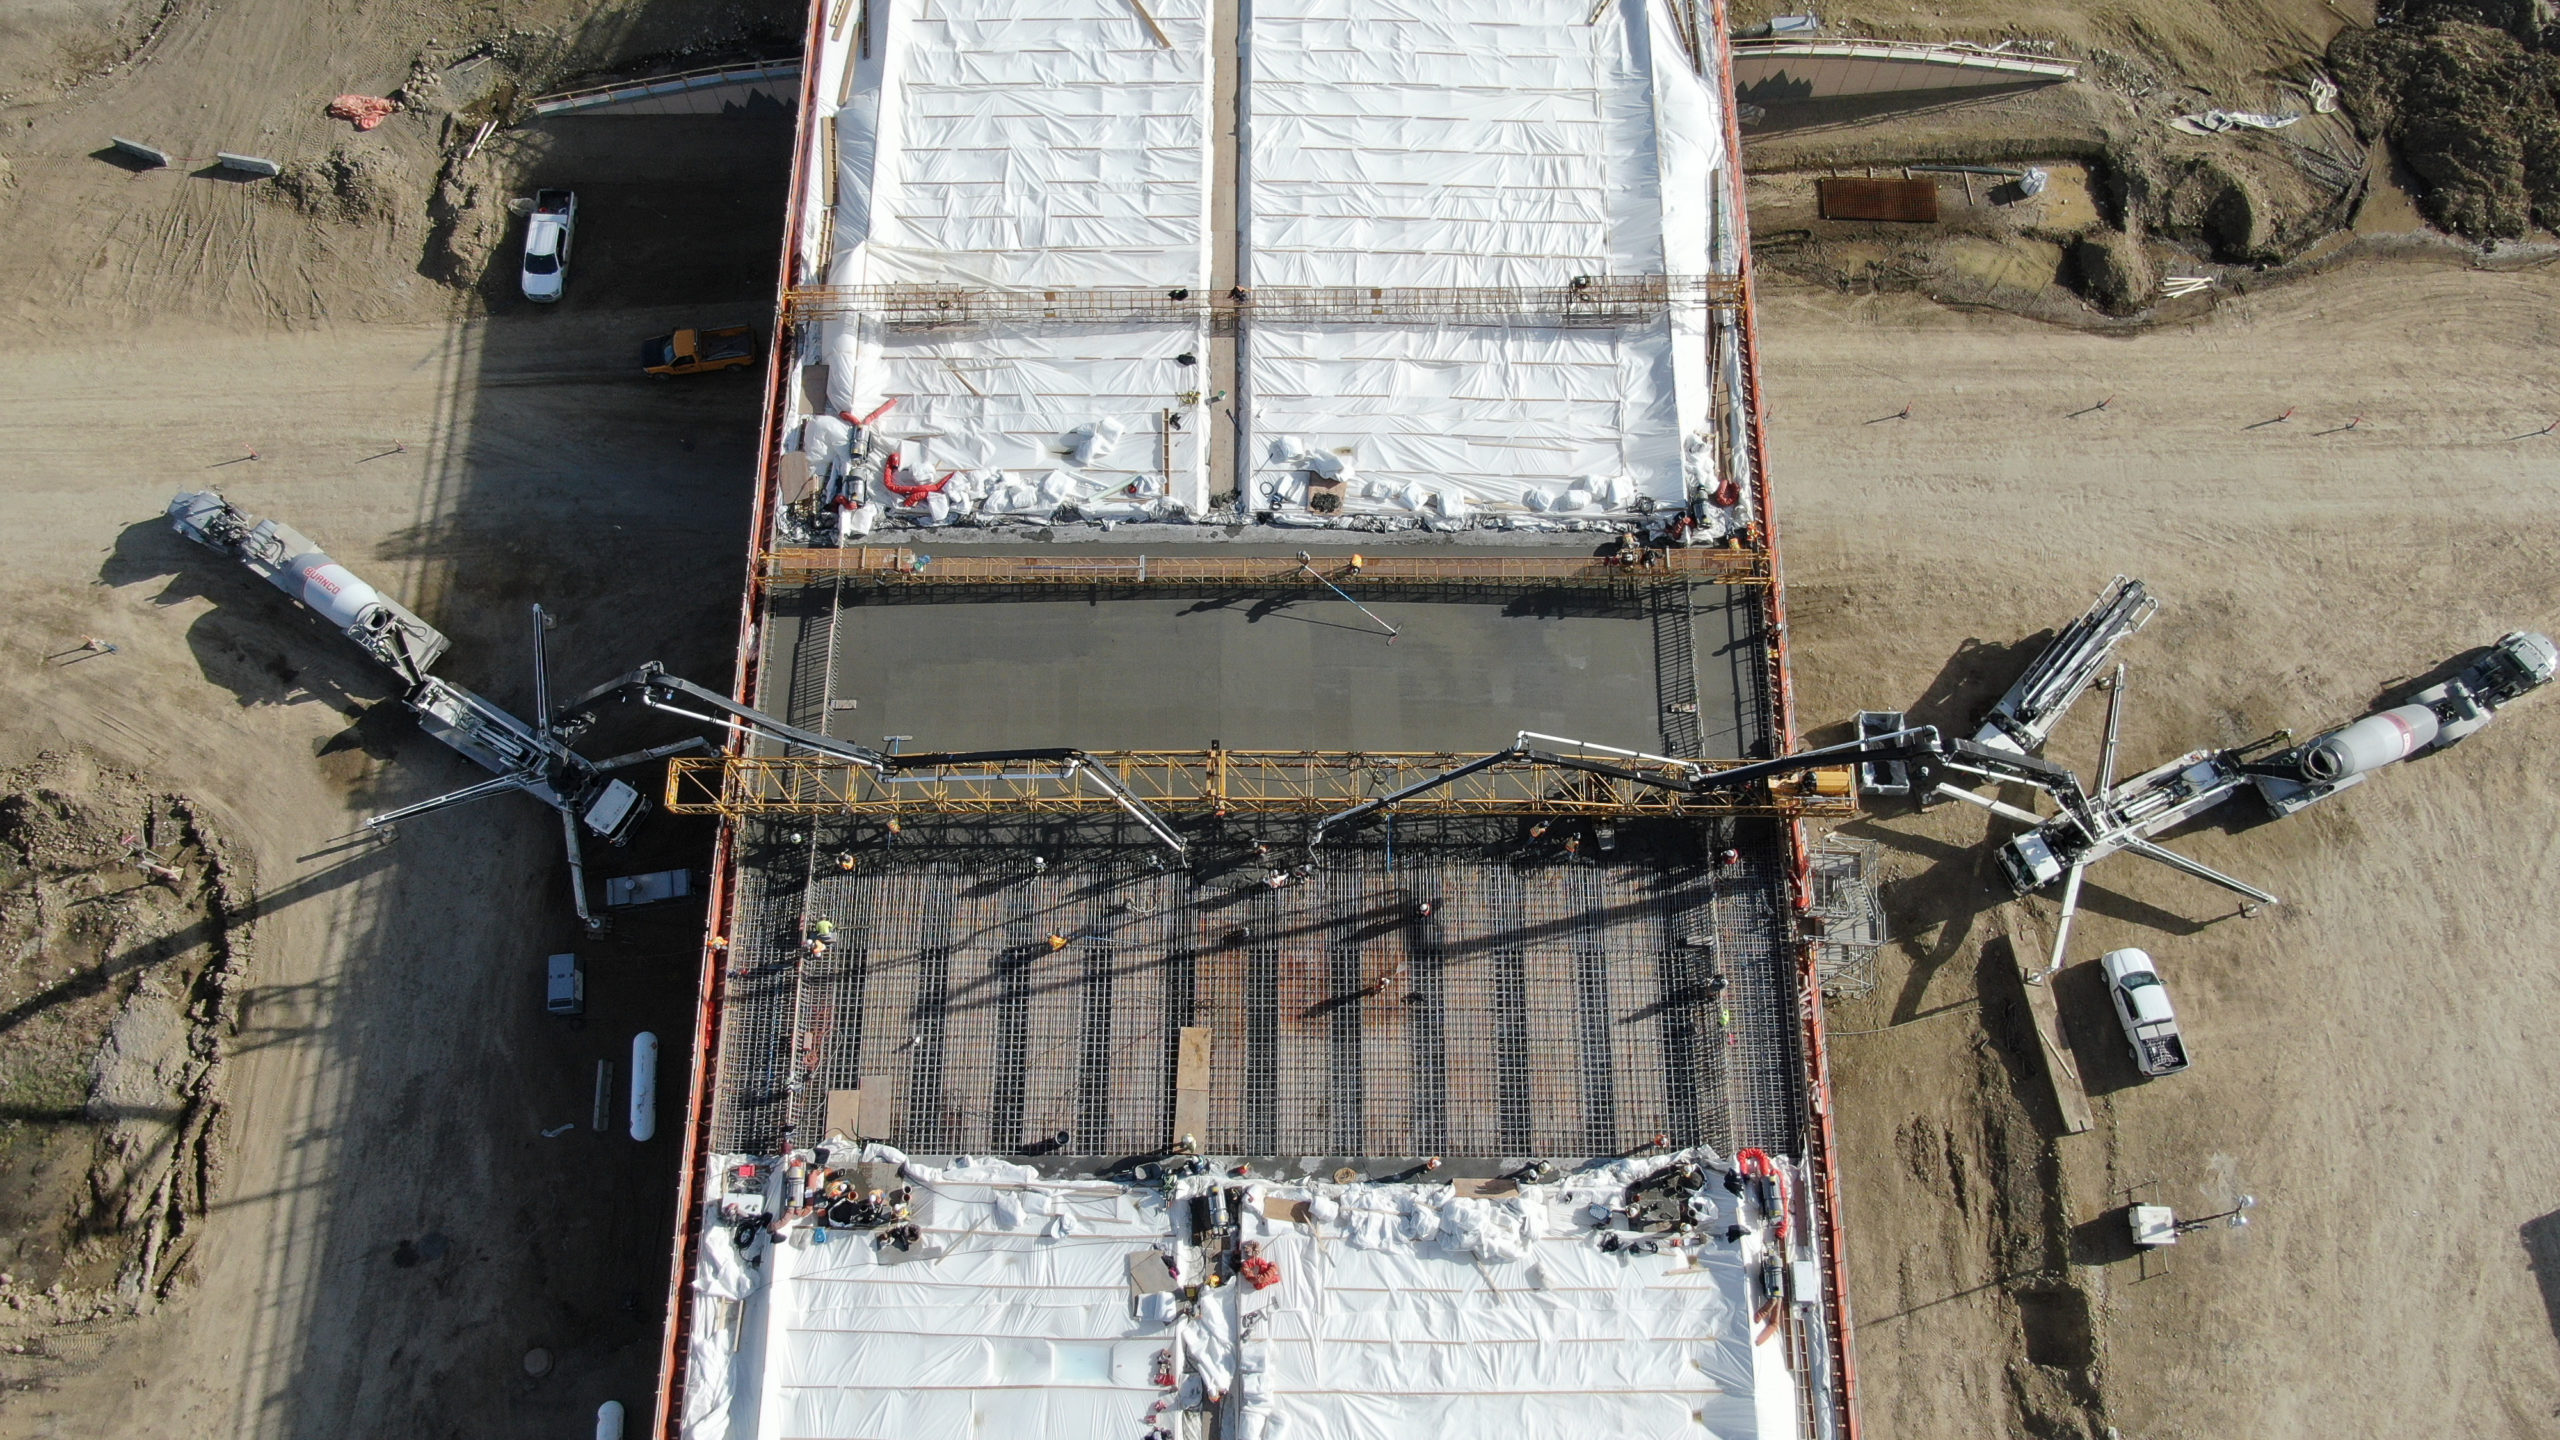 Dynamic Concrete Pumping using two concrete boom pumps to complete the SW Calgary Ring Road project